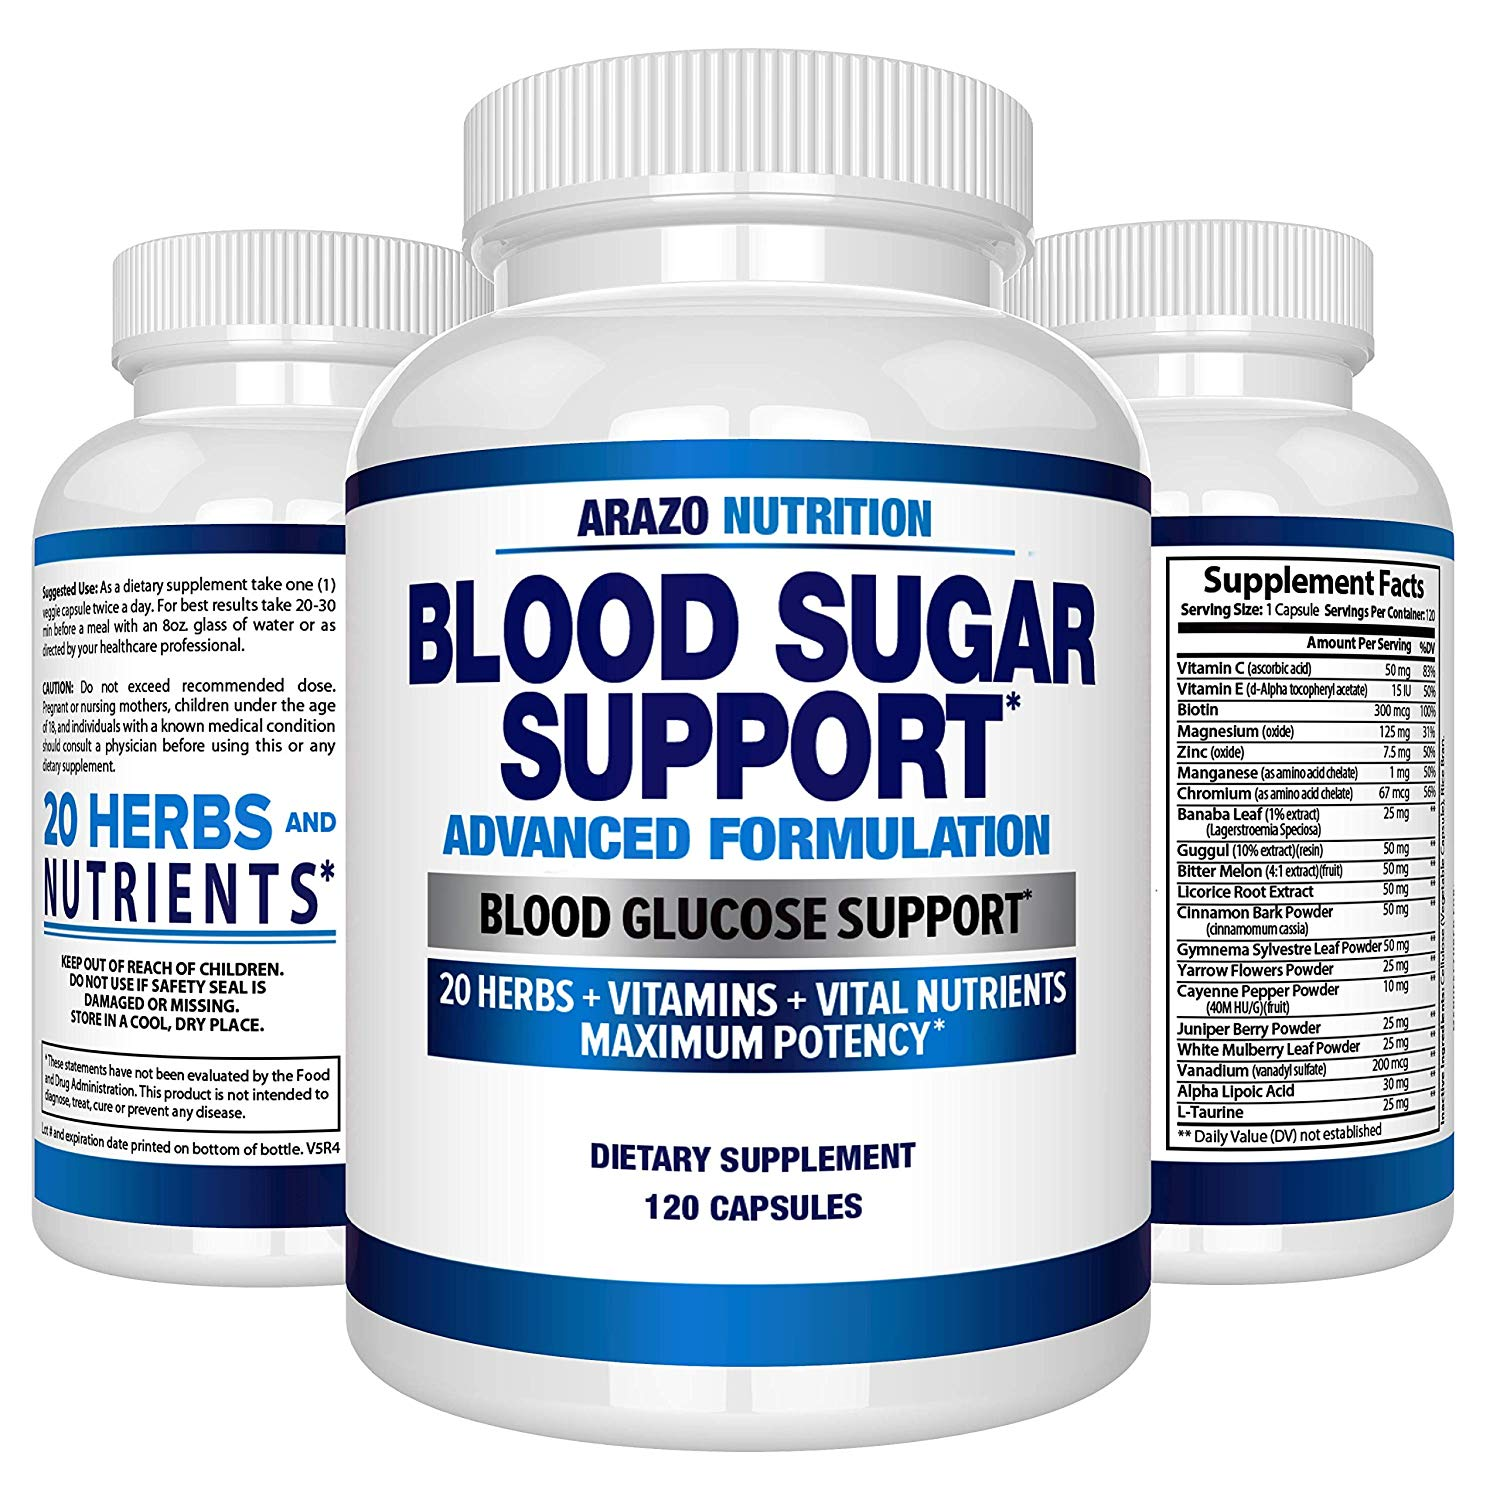 Review of Blood Sugar Support Supplement - 20 HERBS & Multivitamin for Blood Sugar Control by Arazo Nutrition